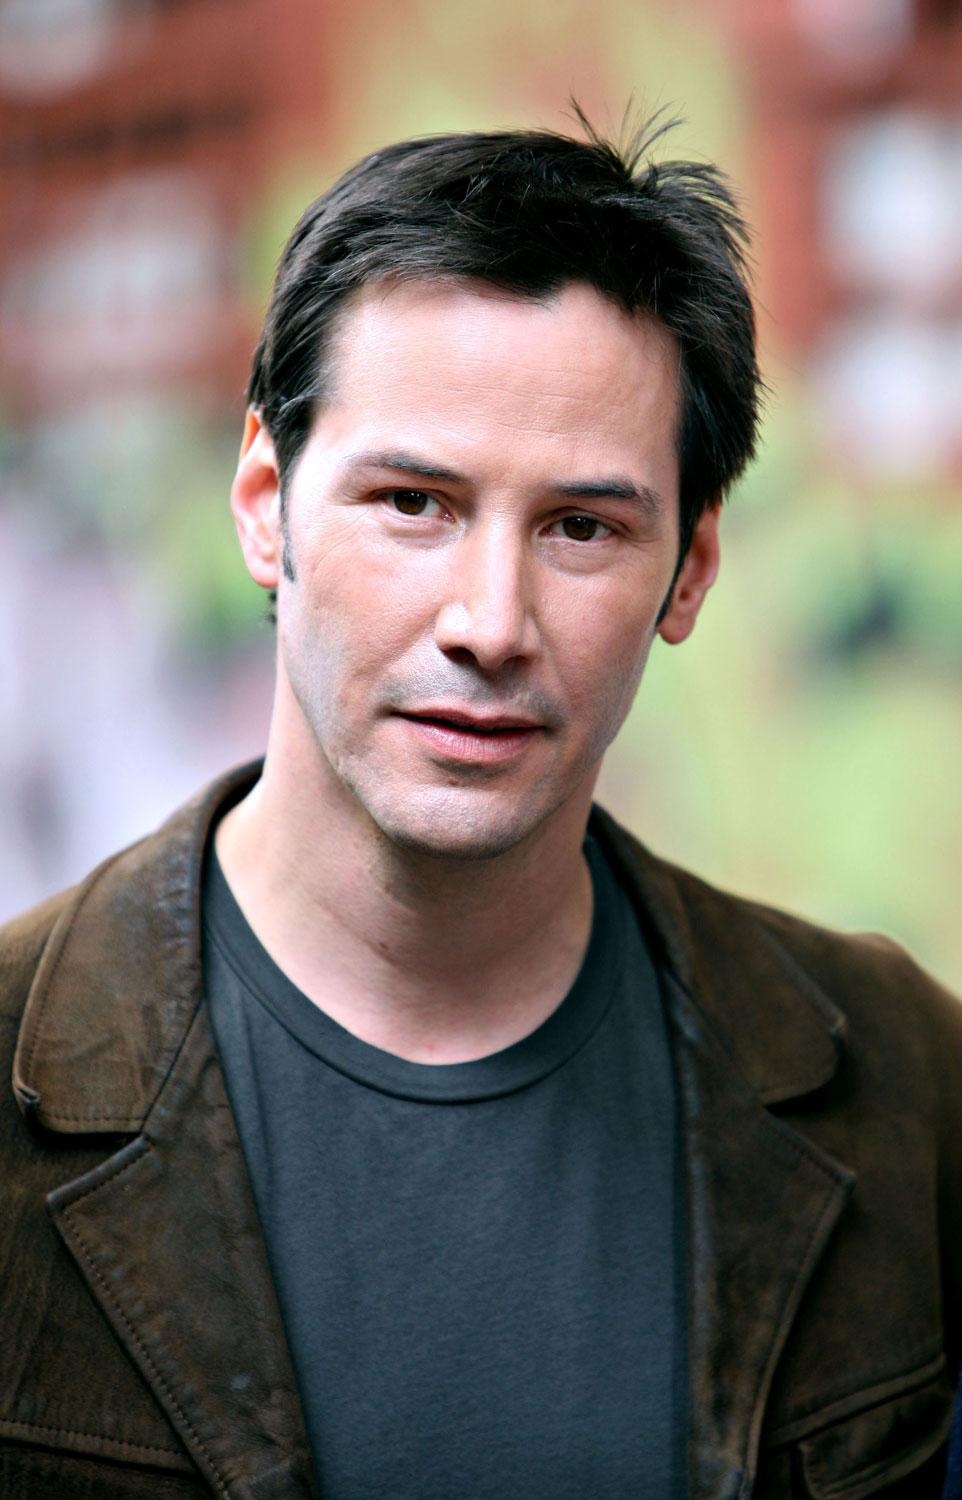 Has Keanu Reeves the facial structure of an incel